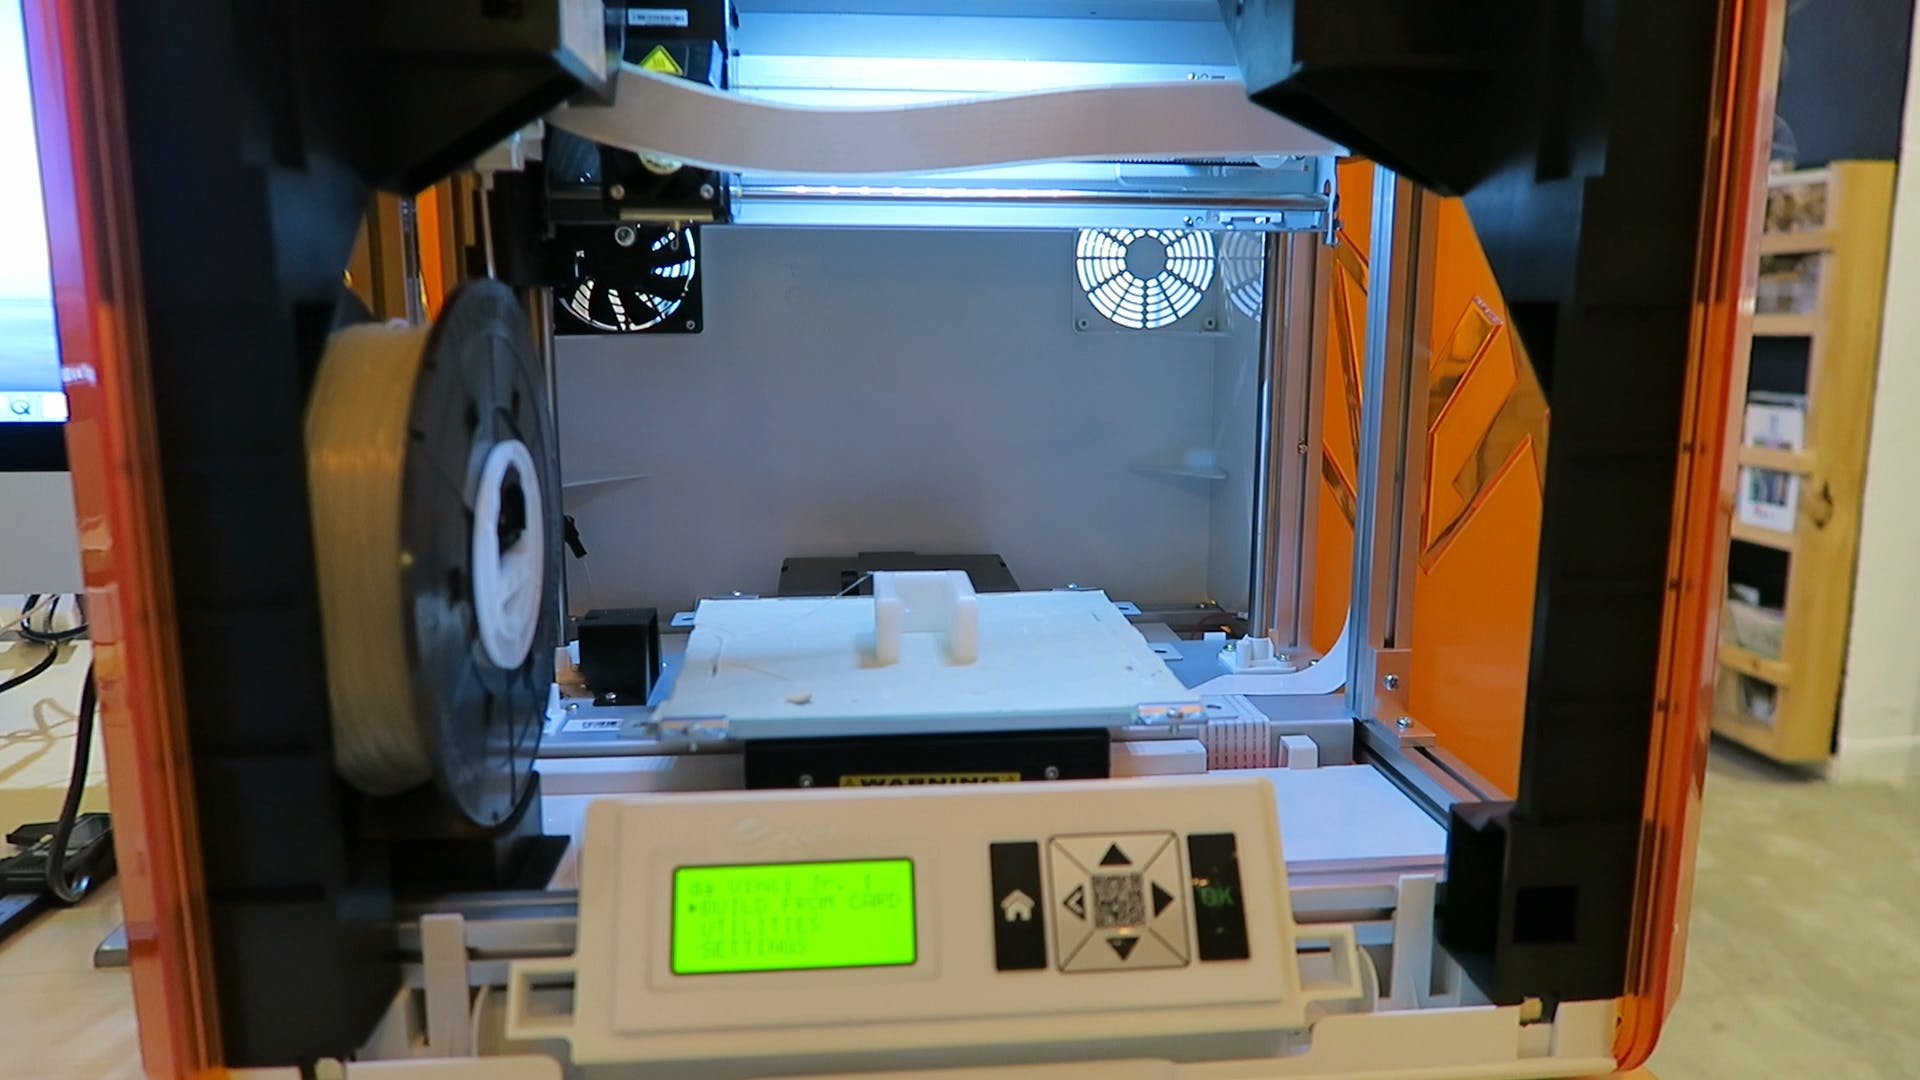 3D-printed case to house the electronic components